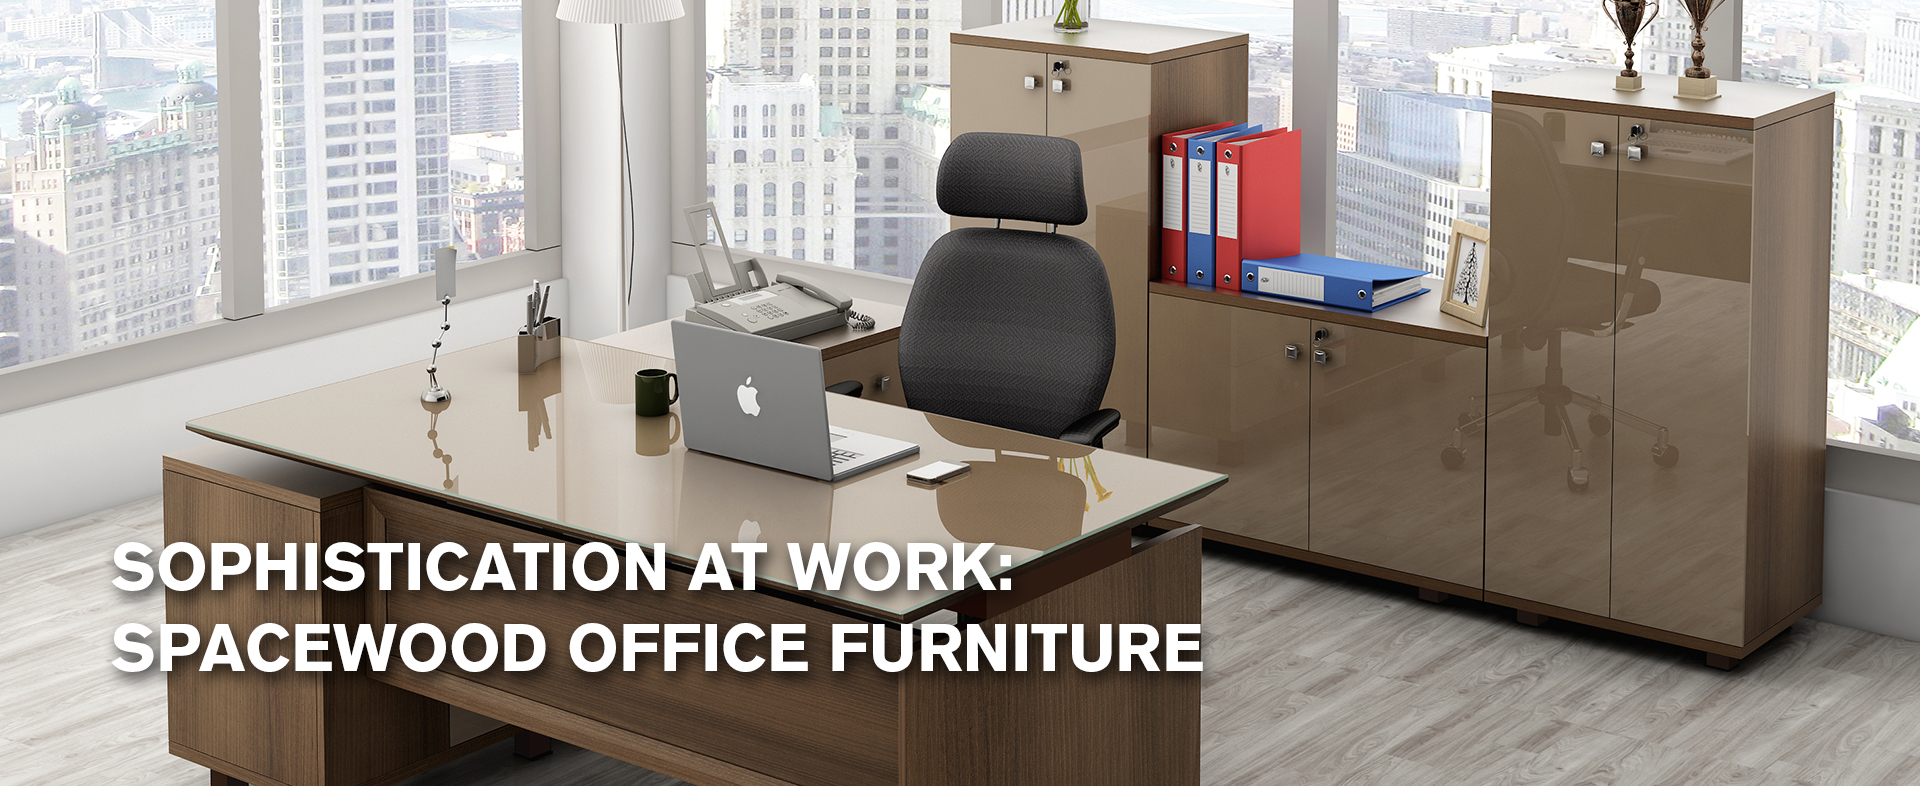 Spacewood Office Furniture